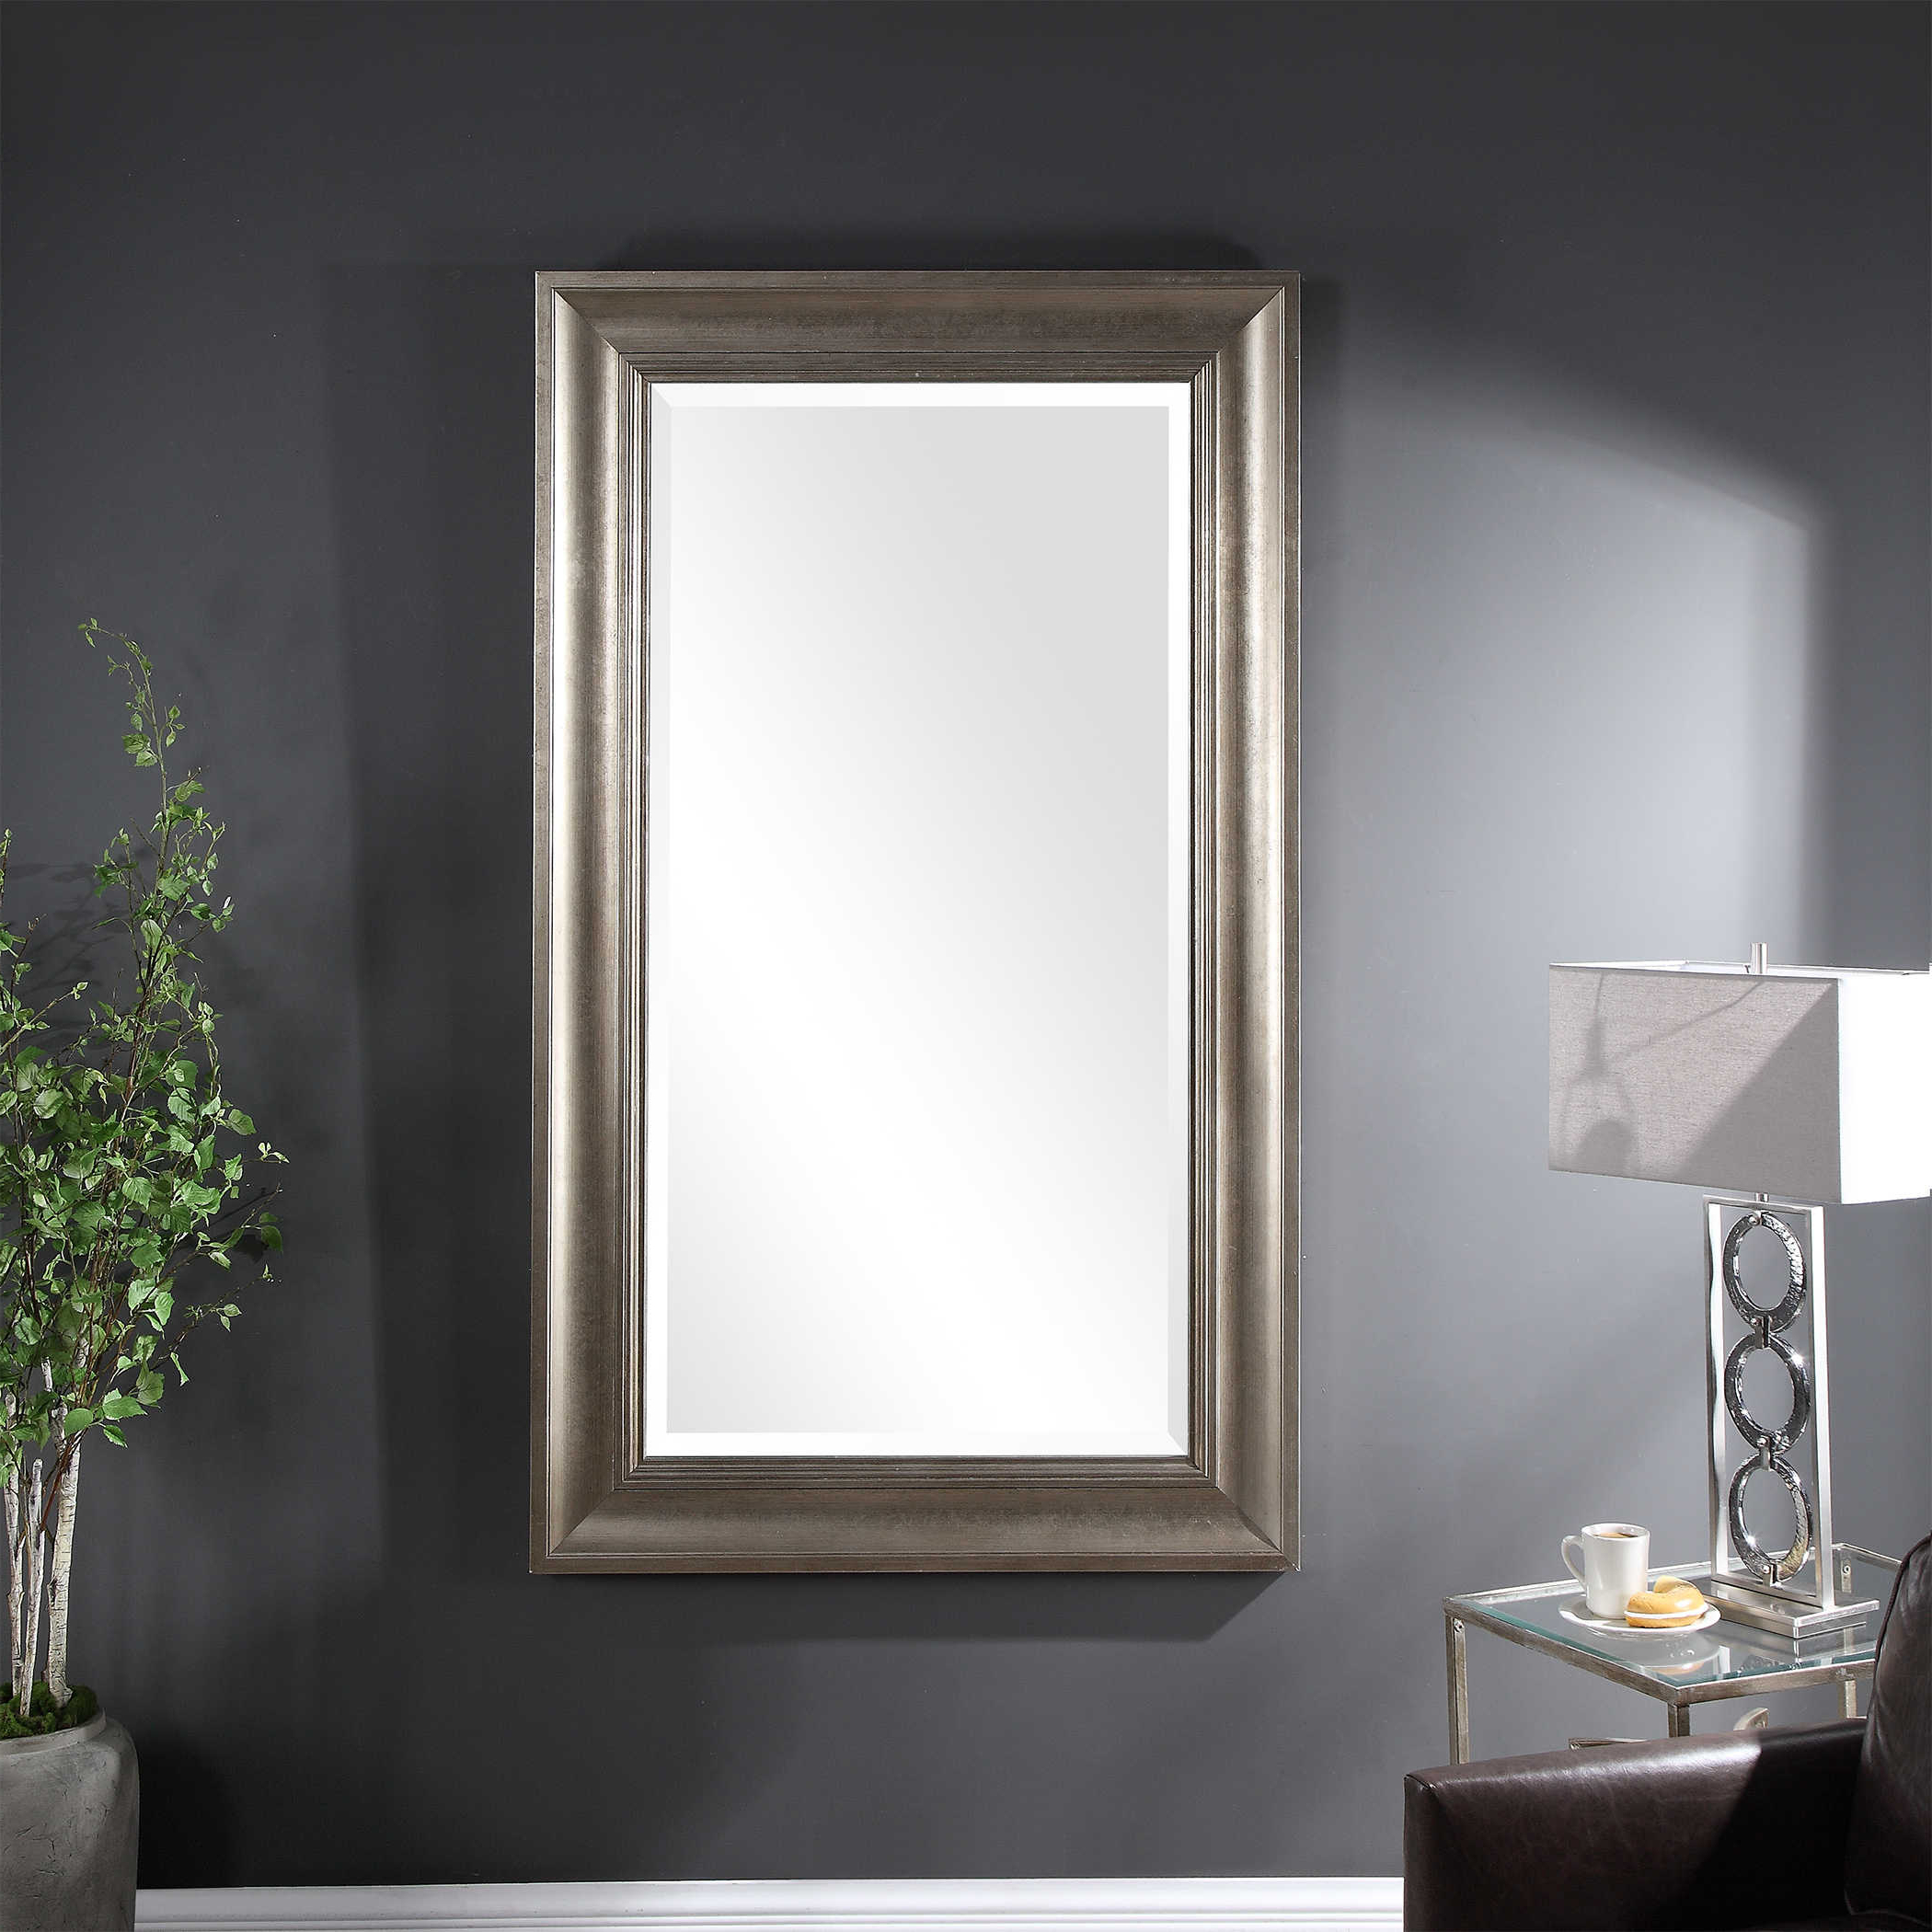 2019 Uttermost Wall Mirrors Pertaining To Uttermost Palia Silver Leaf Wall Mirror (View 1 of 20)